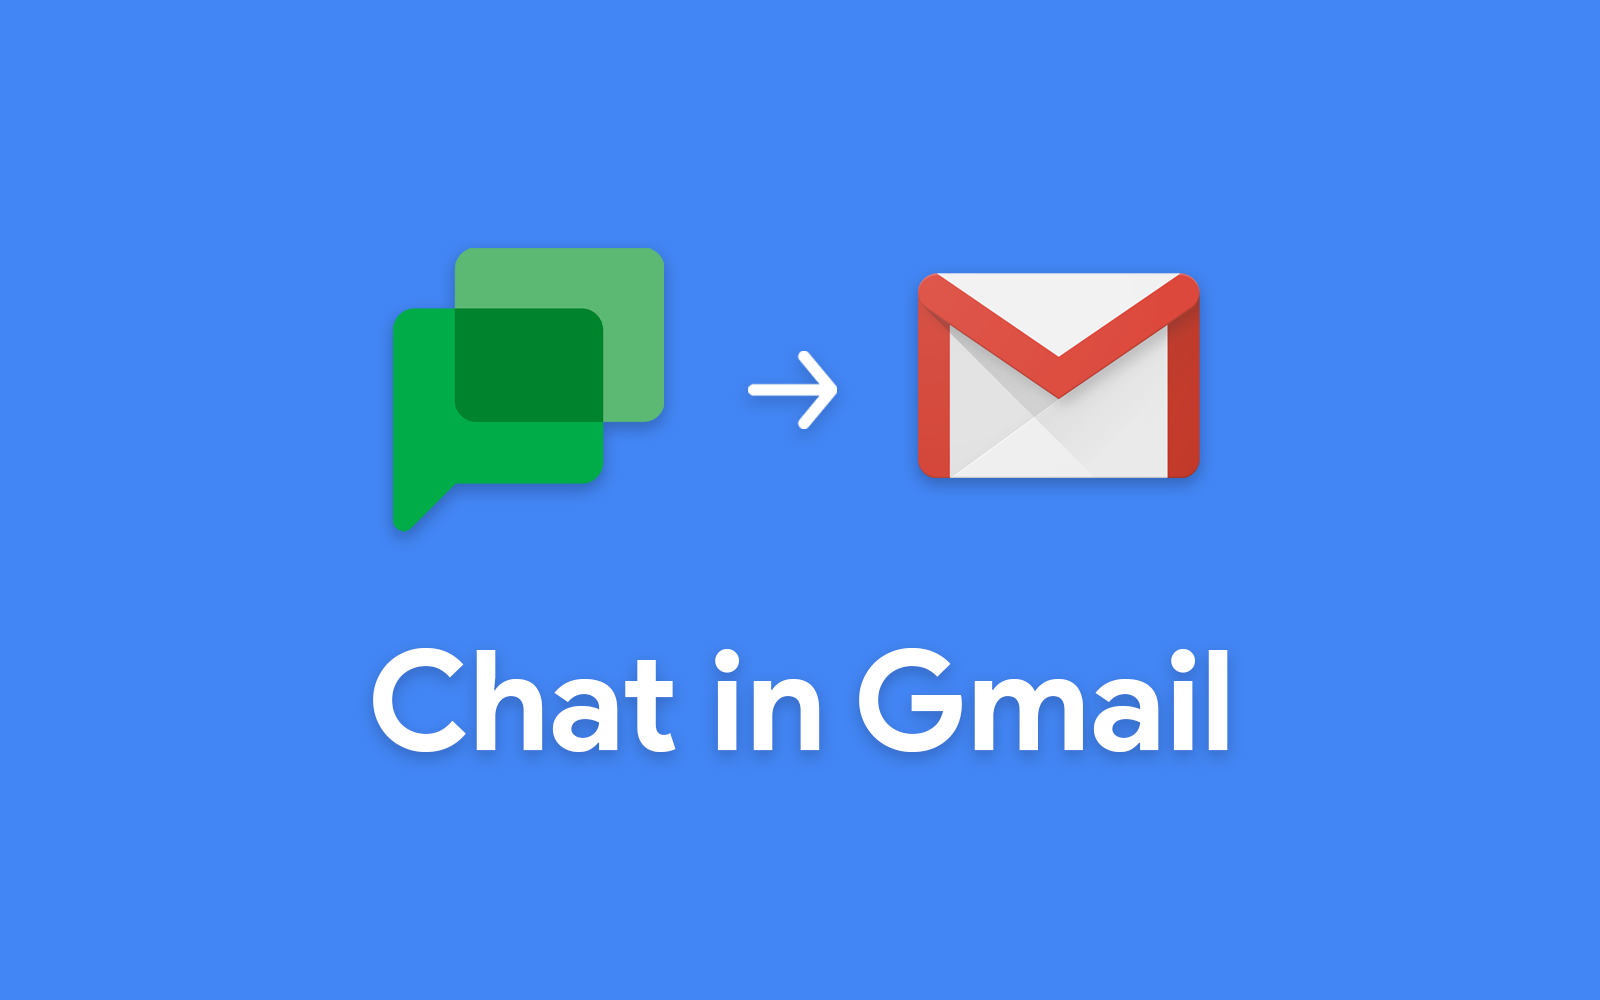 Green Text Messaging icon pointing to Gmail icon